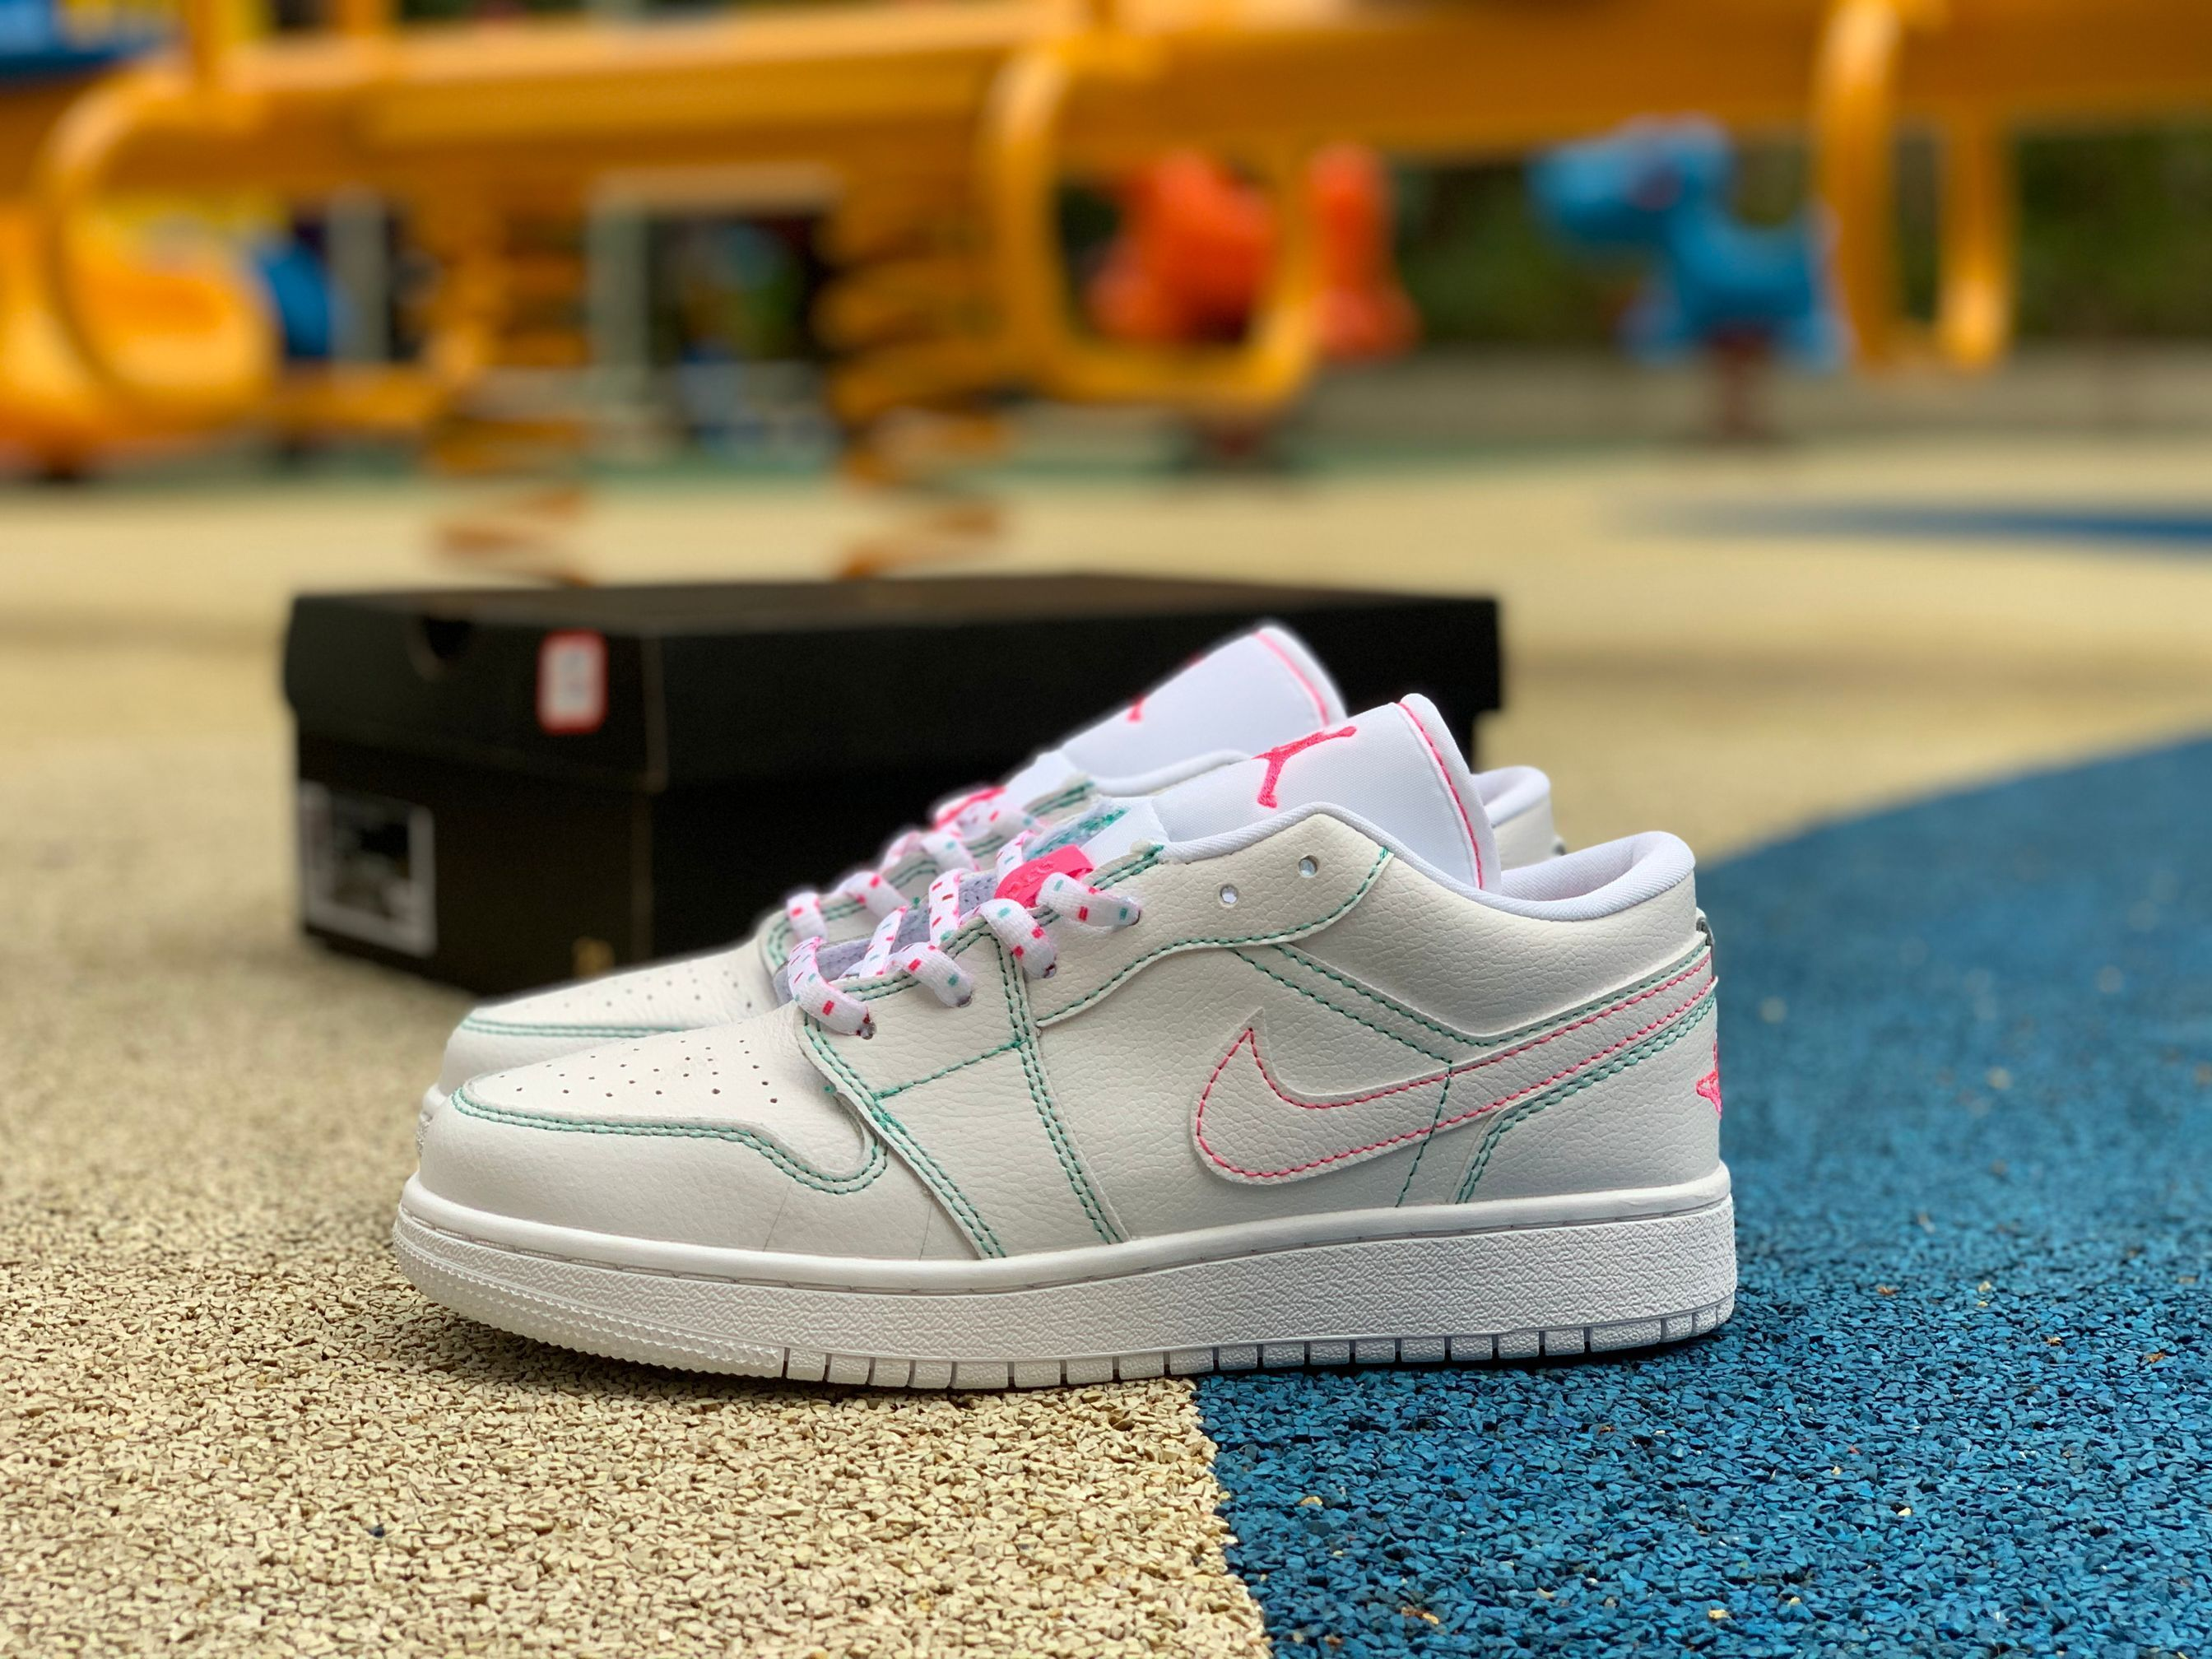 2020 Air Jordan 1 Low Gs Cotton Candy Pink Blue 554723 101 For Sale Air Jordans Jordan 1 Low Jordans